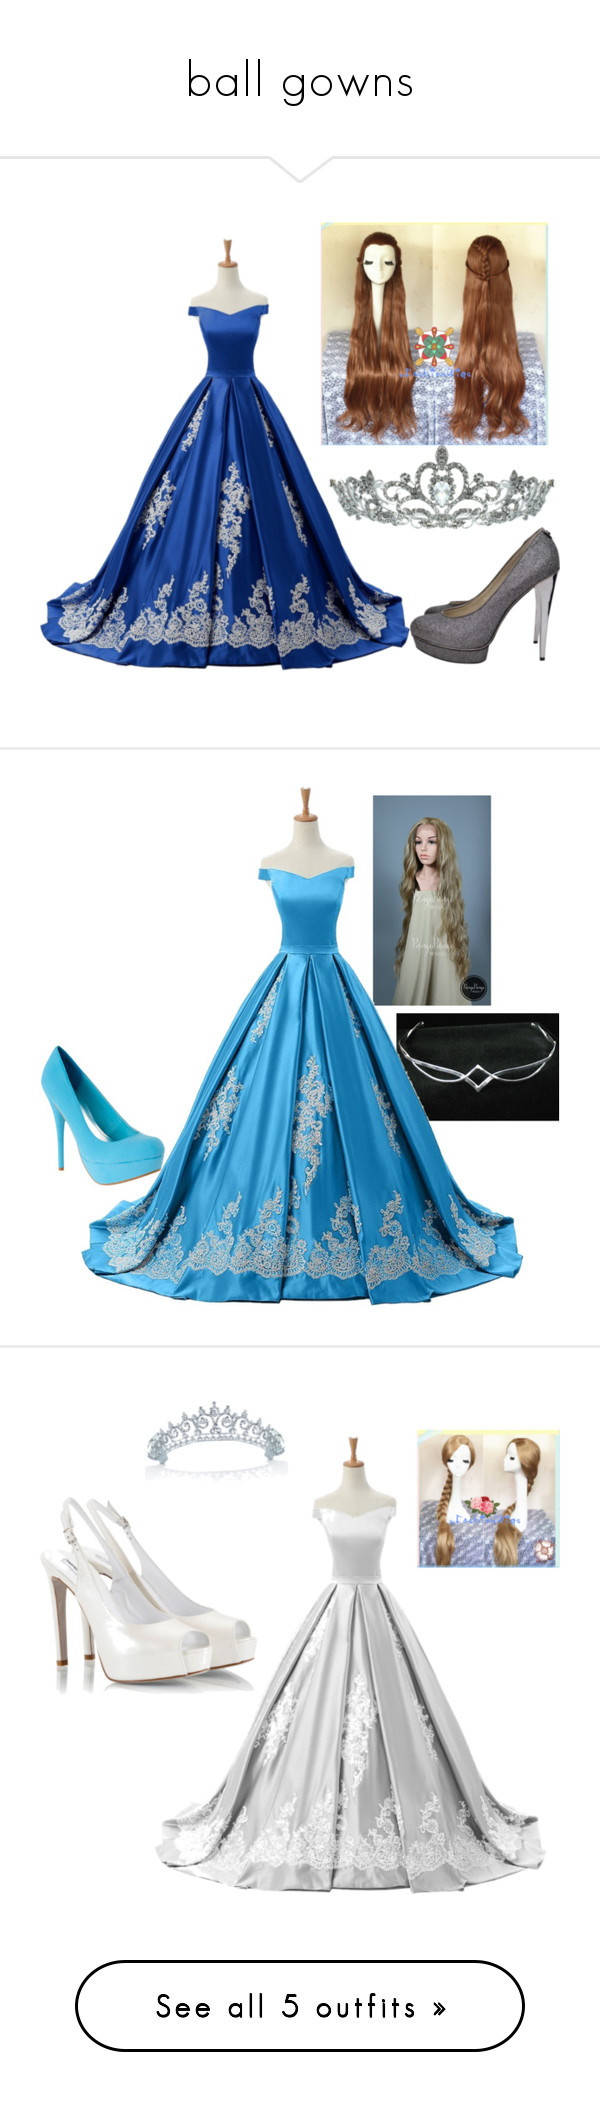 ball gowns\